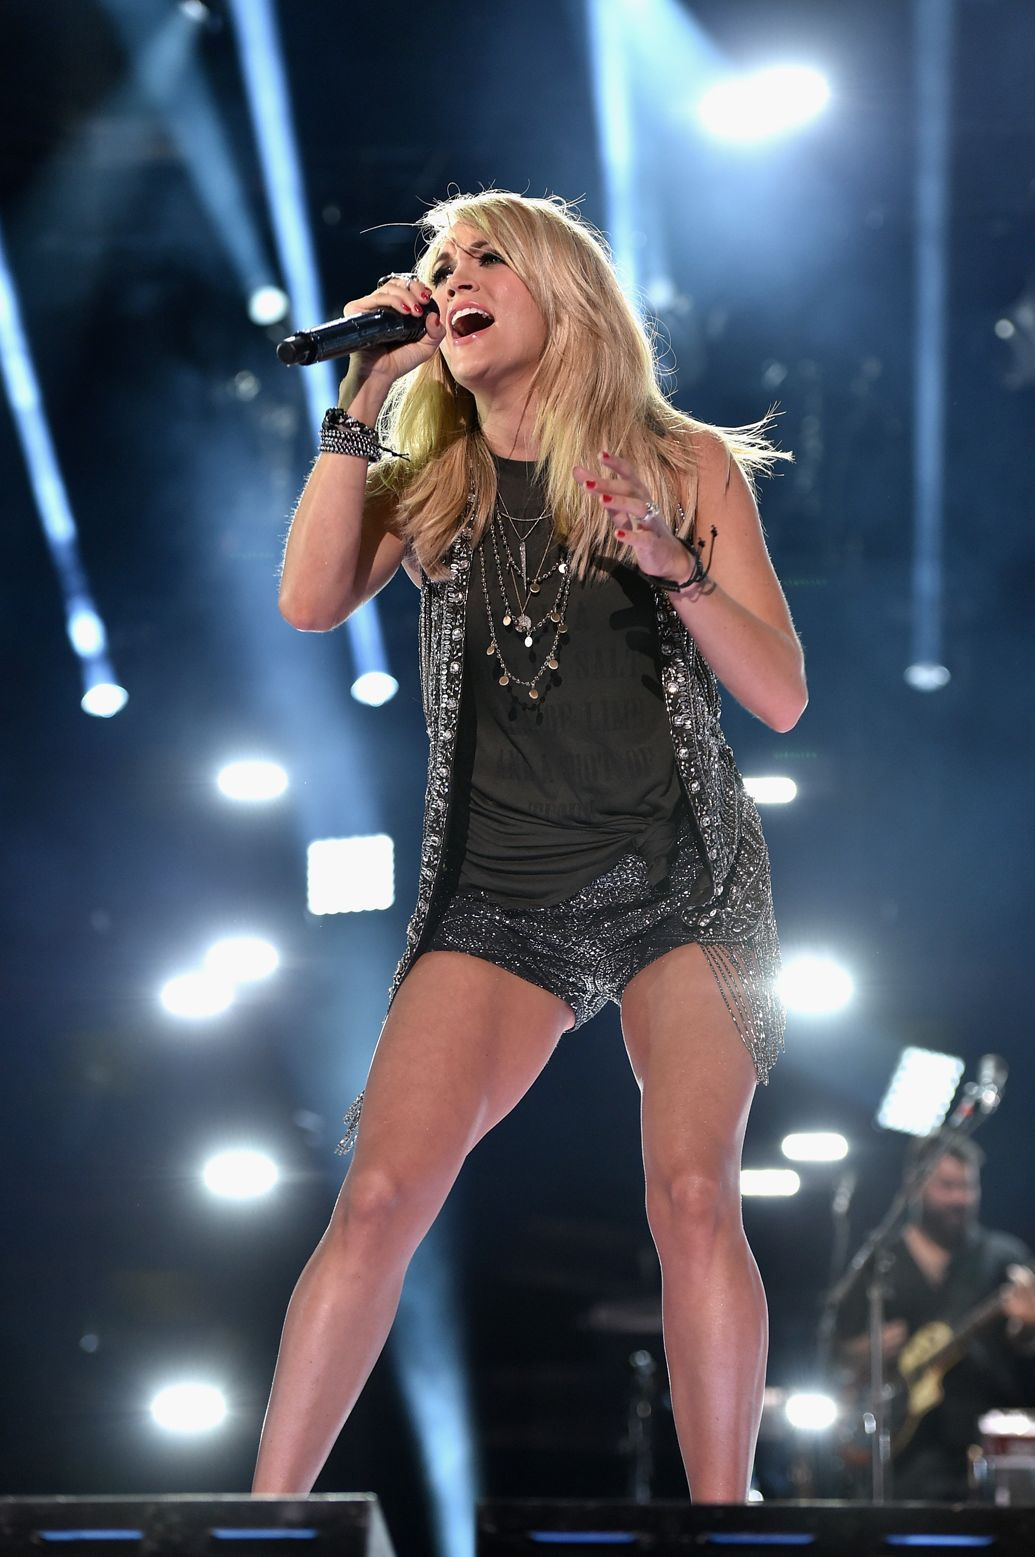 Carrie Underwood To Return For Sunday Night Football Theme Carrie Underwood Pictures Carrie Underwood Carrie Underwood Style